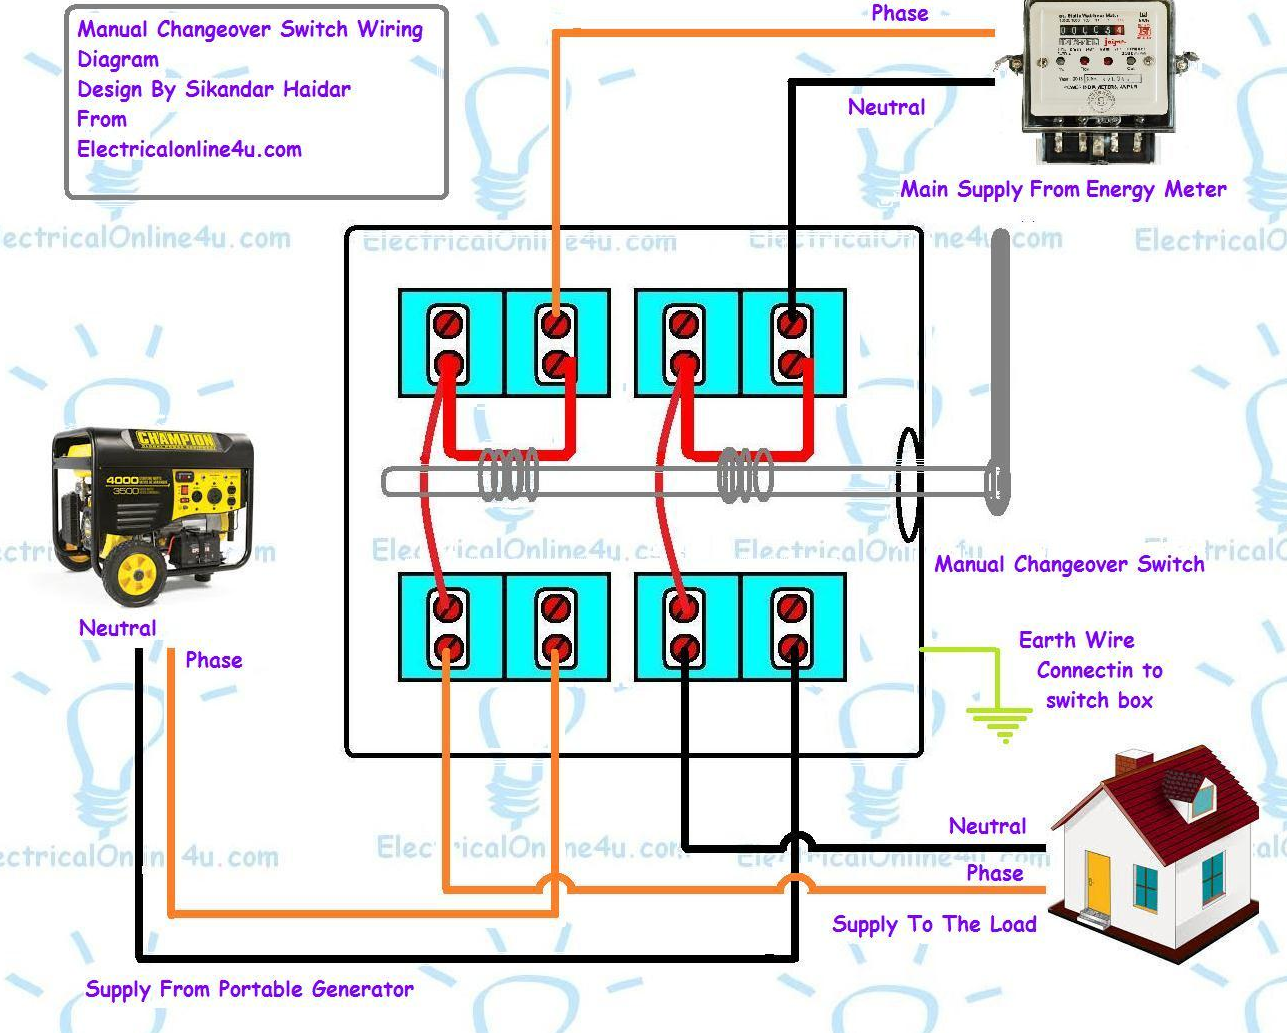 manual changeover switch wiring diagram for portable [ 1287 x 1033 Pixel ]